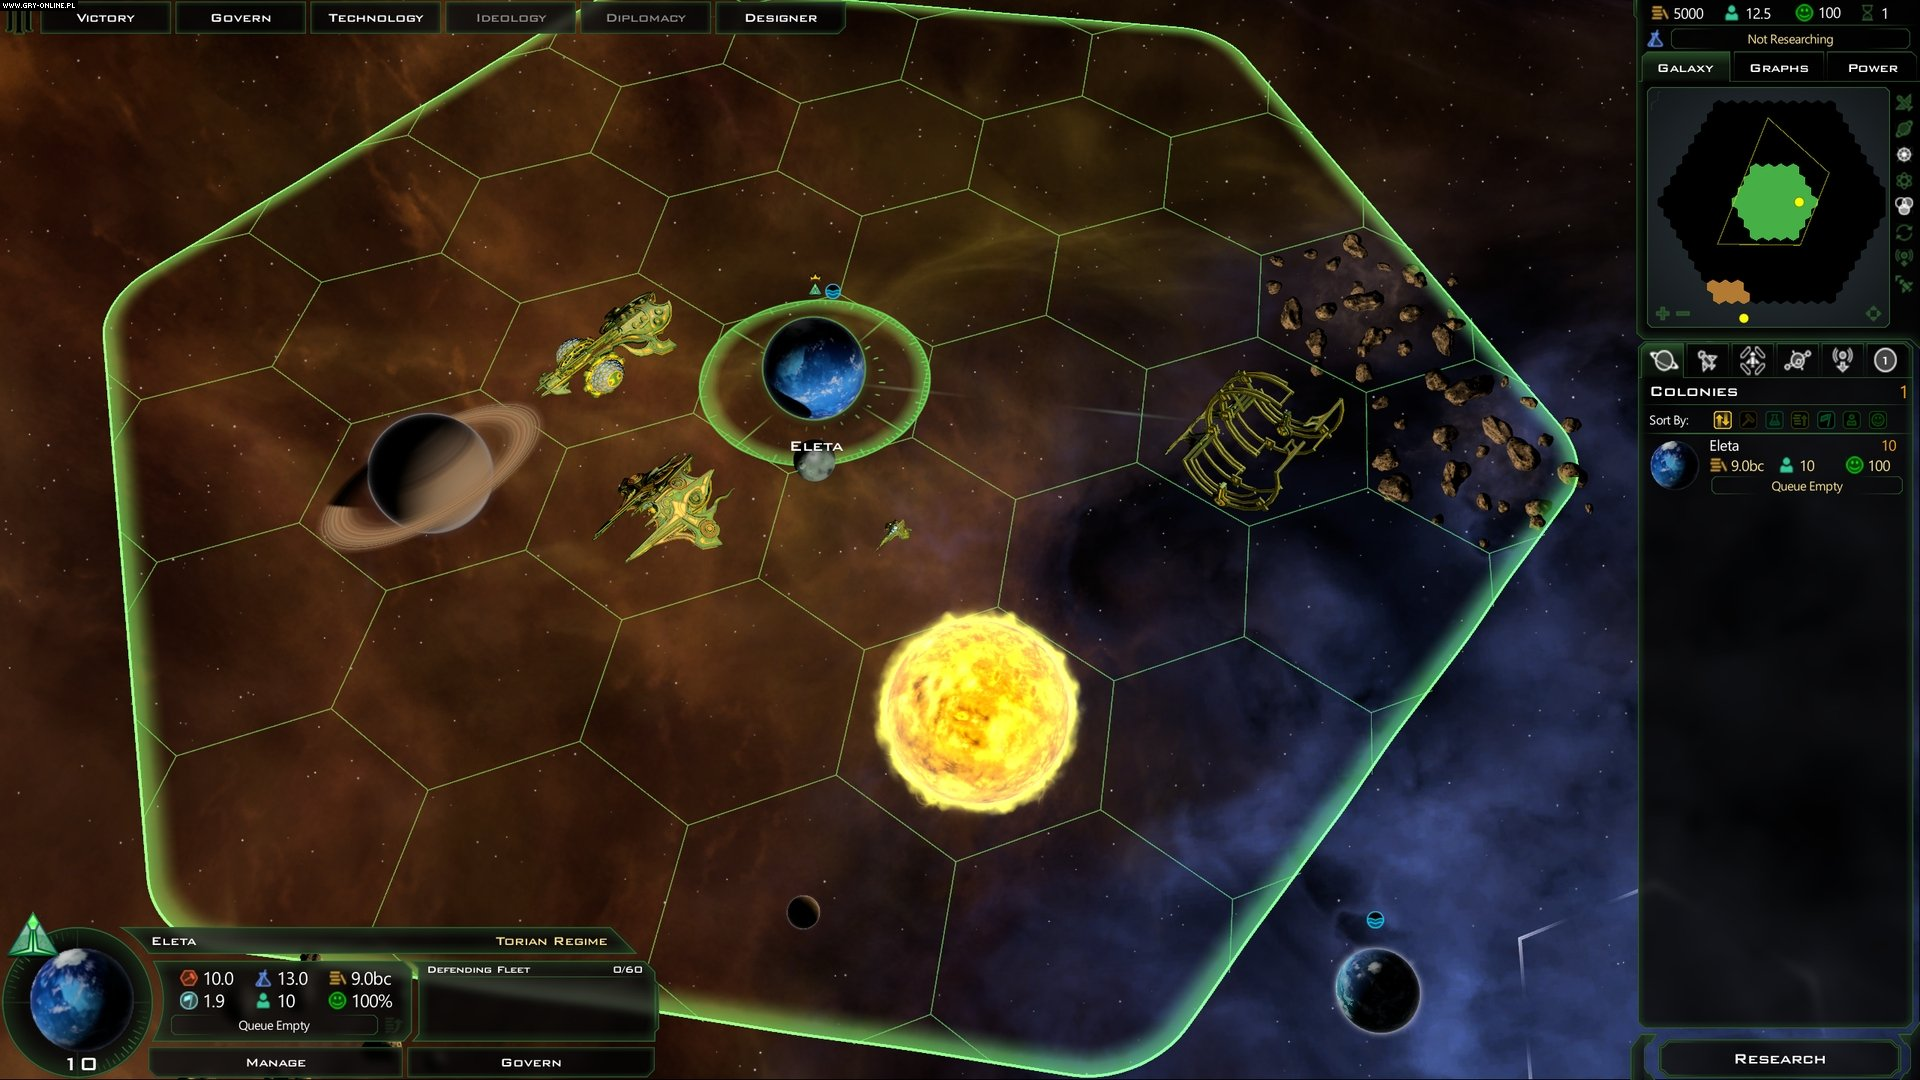 Galactic Civilizations III: Mercenaries PC Games Image 1/14, Stardock Corporation